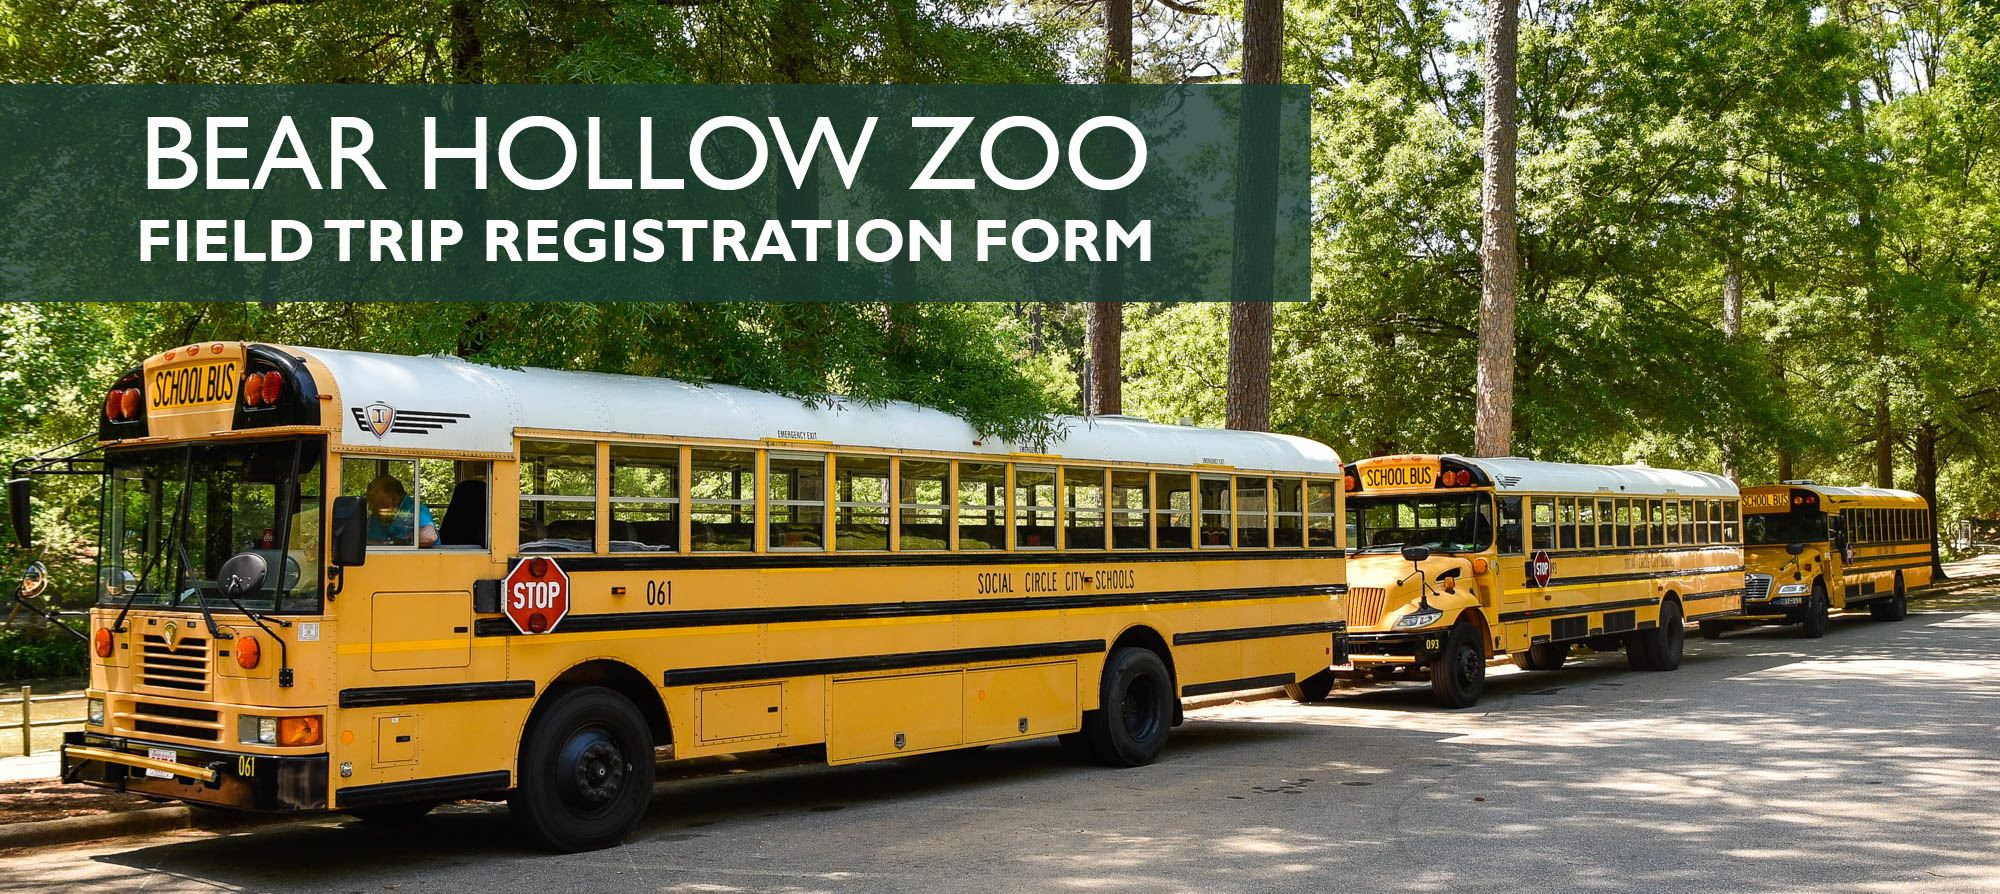 Bear Hollow Zoo Field Trip Form